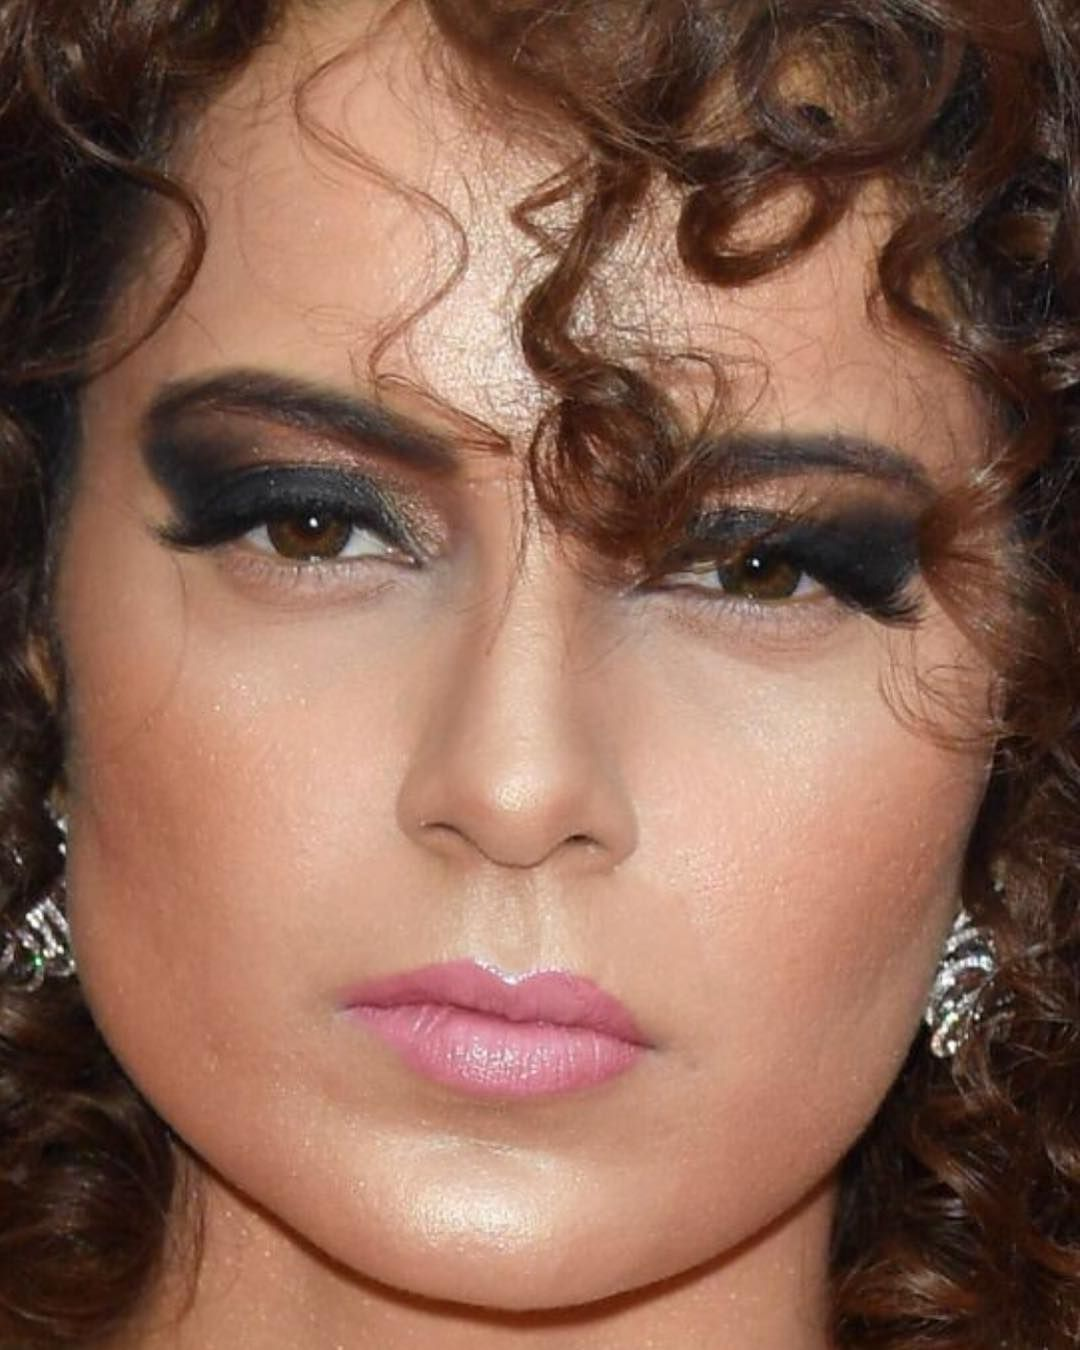 The Stylish Kangana Ranaut Spotted In Cannes Gorgeous Eyes Makeup Looks Bollywood Fashion